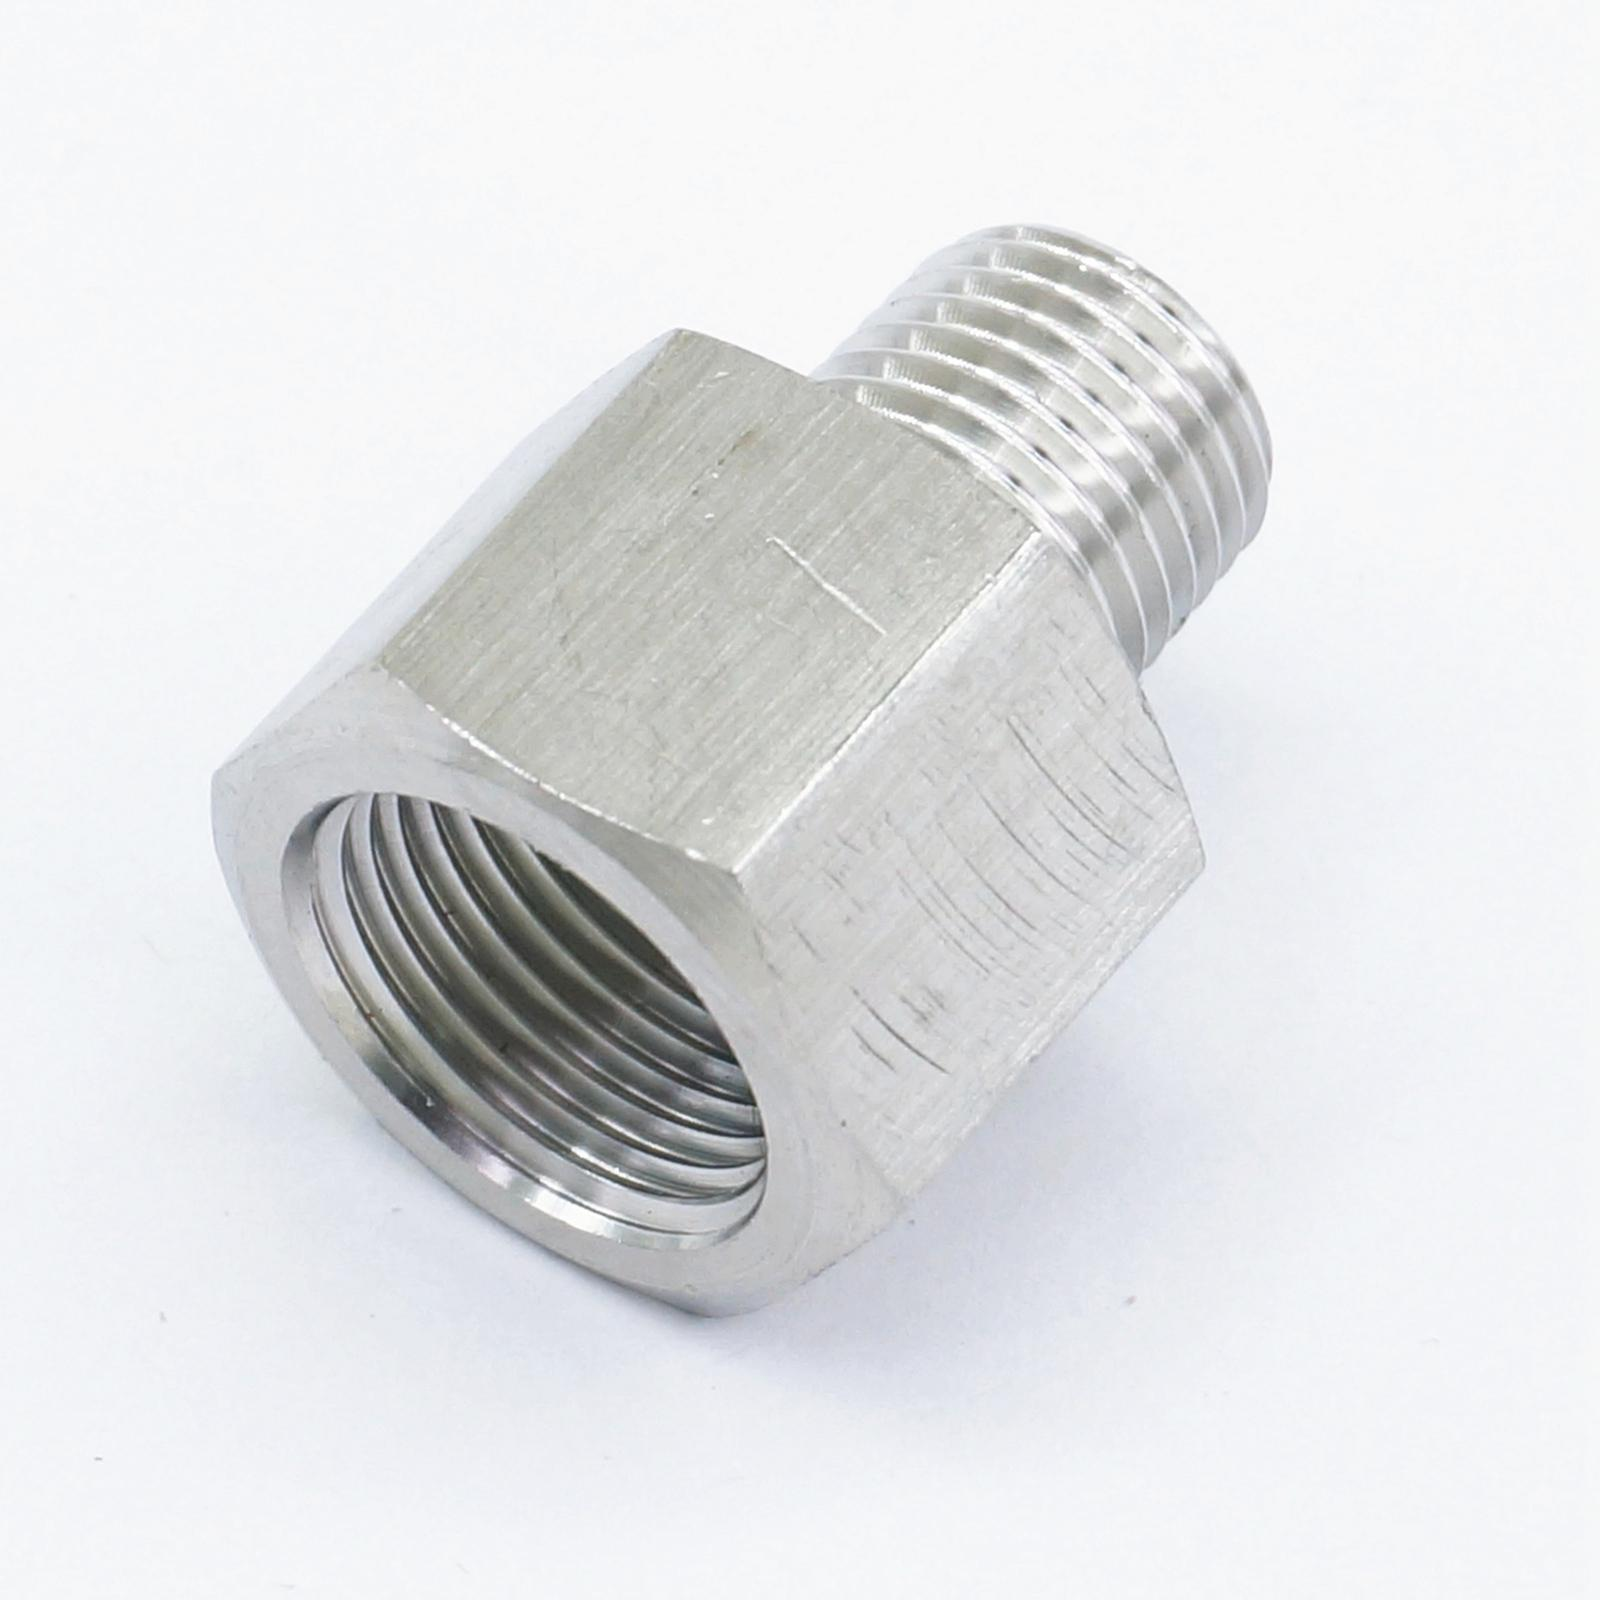 304 Stainless Steel Pipe Fitting Connector Adapter 3/8